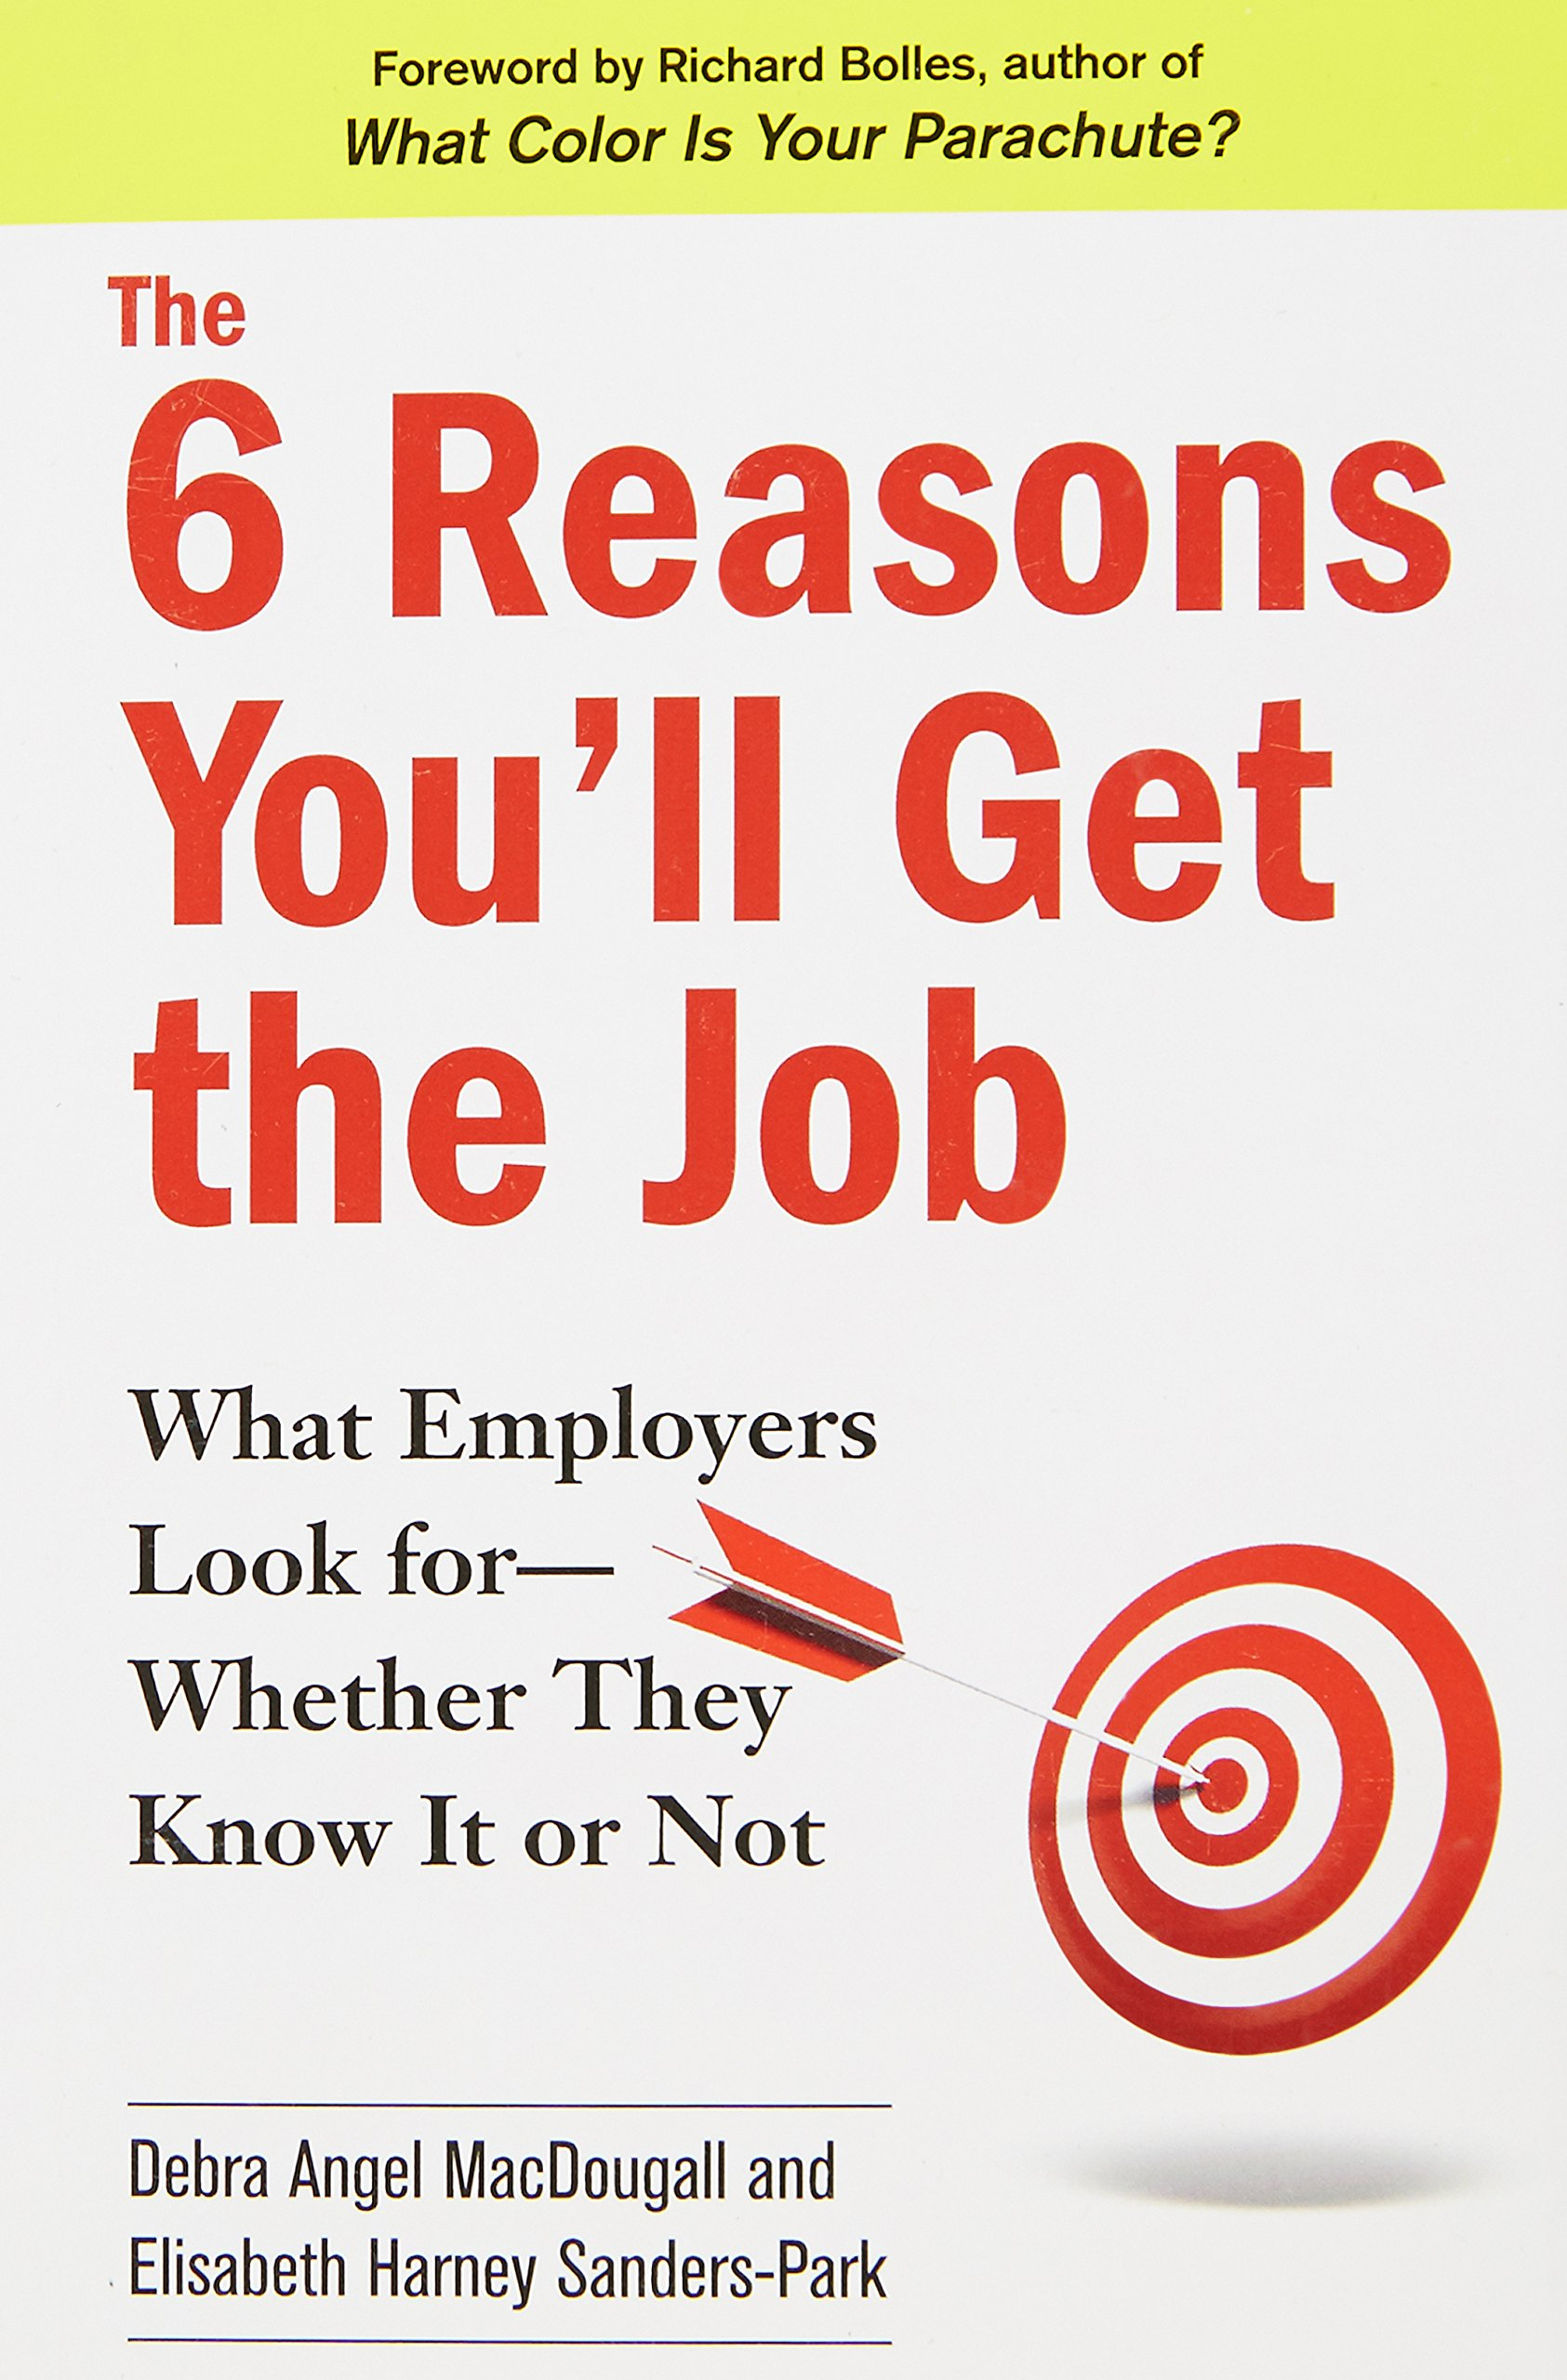 the 6 reasons you ll get the job what employers look for whether the 6 reasons you ll get the job what employers look for whether they know it or not debra angel macdougall elisabeth harney sanders park